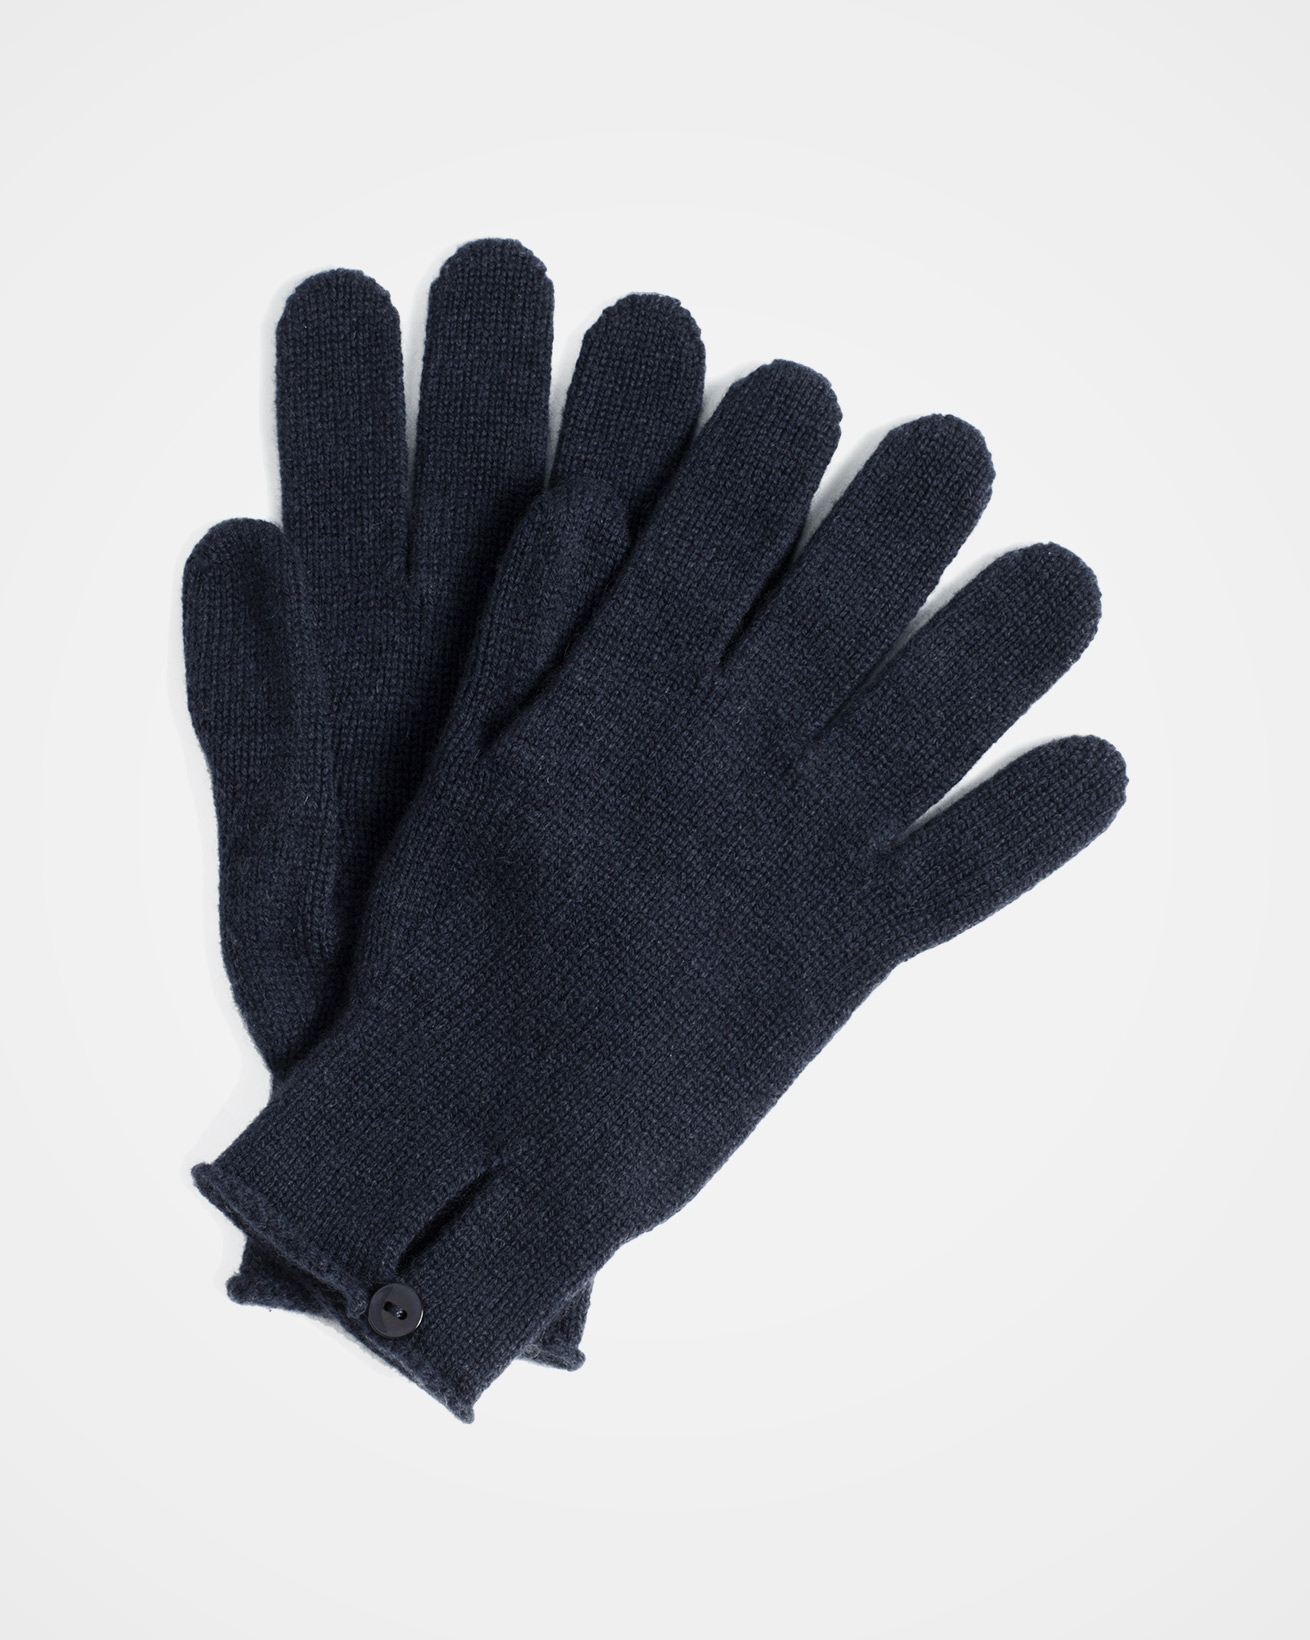 7490_ladies-cashmere-buttoned-glove_navy_web.jpg